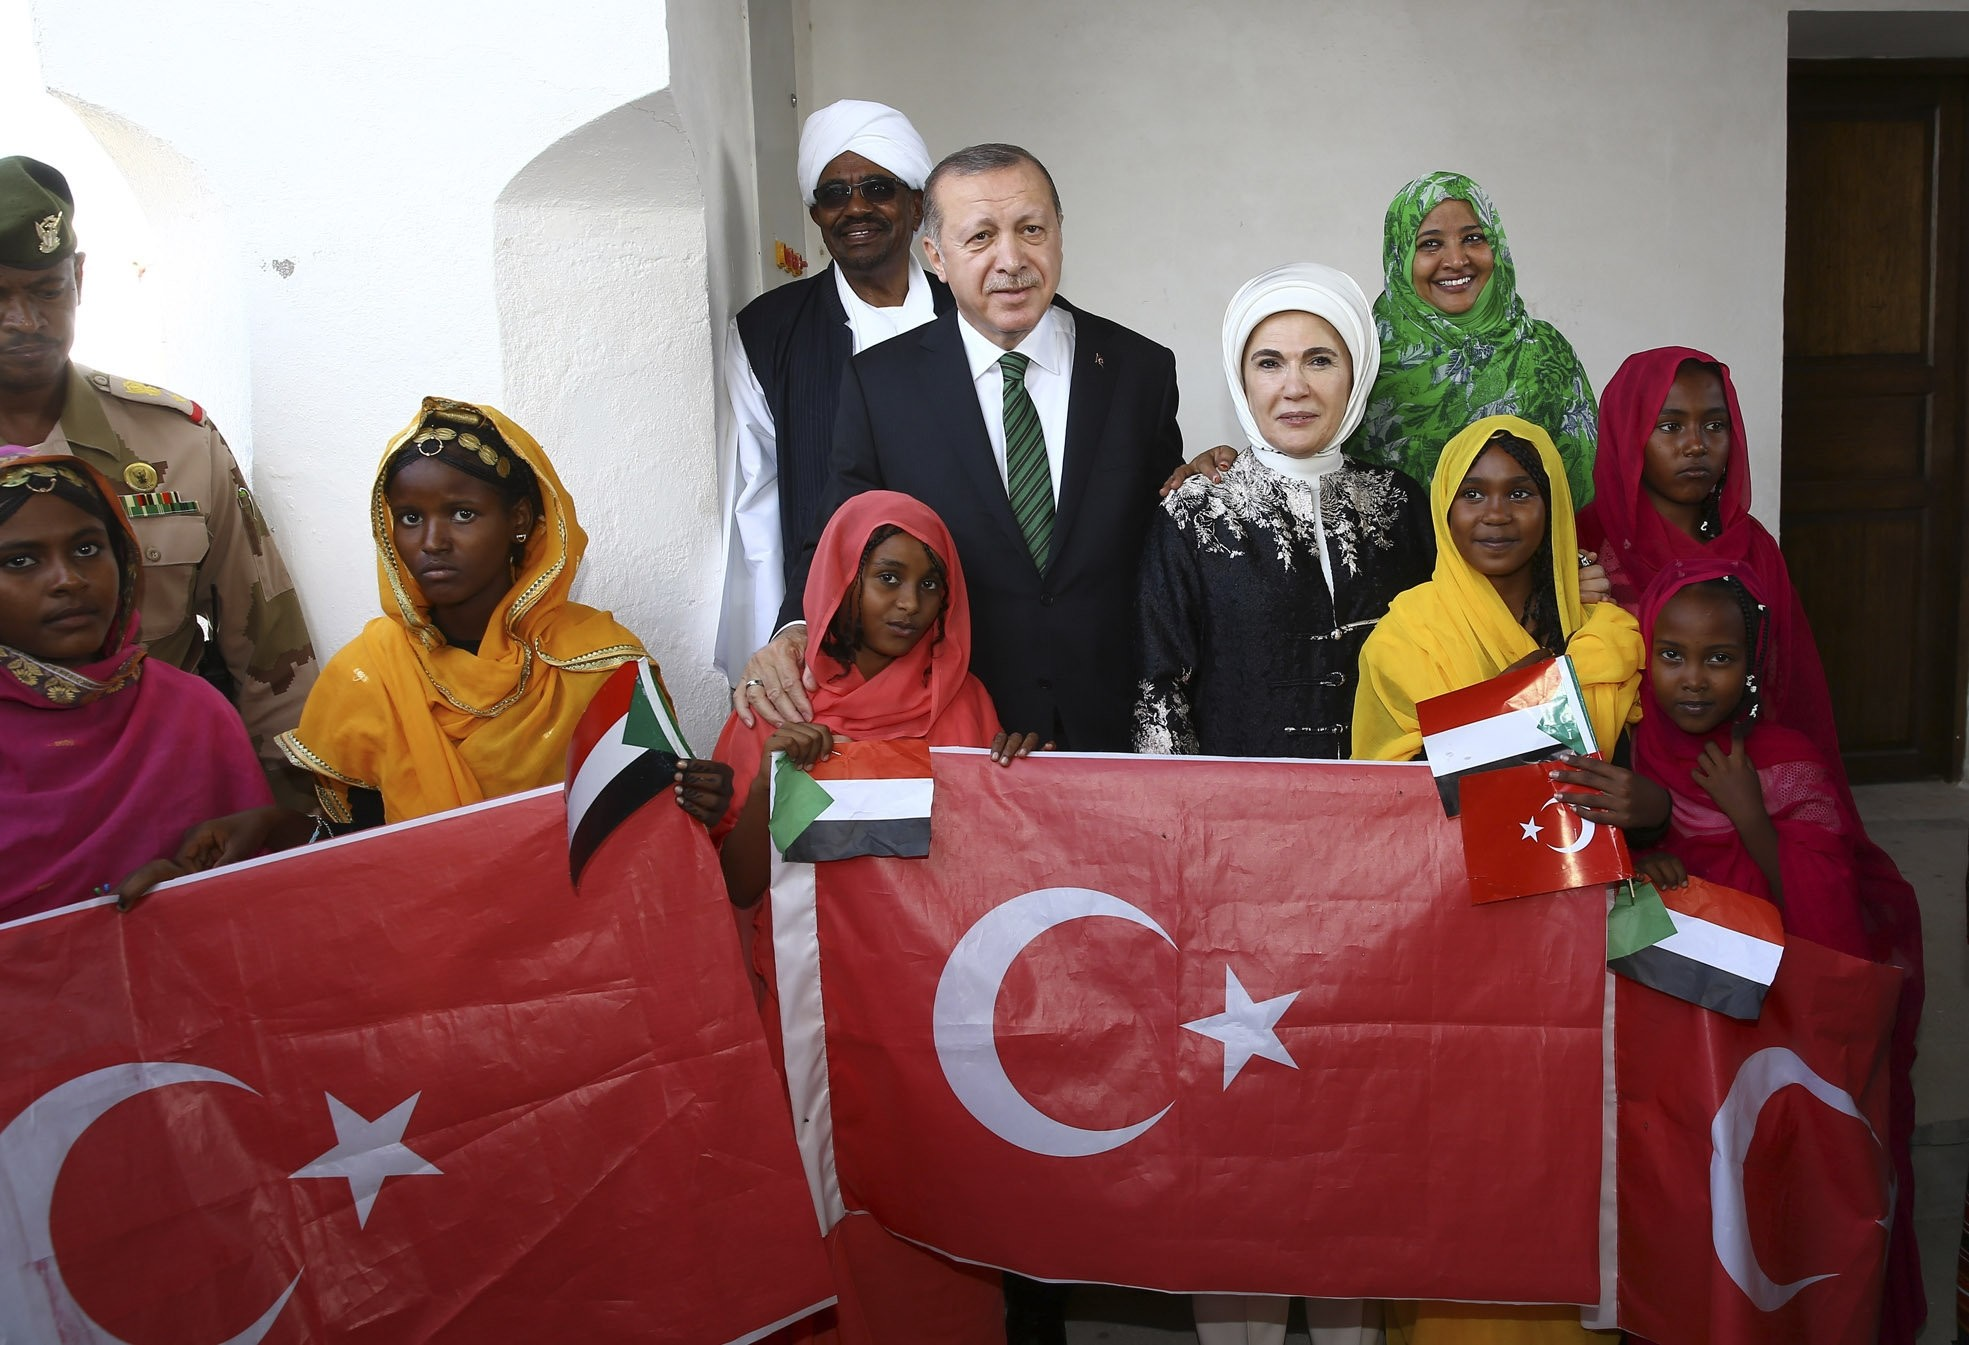 President Erdou011fan (C), accompanied by first lady Emine Erdou011fan, pose for a photograph with Sudan's President Omar al-Bashir and first lady Widad Babiker u00d6mer Modawi alongside local people holding the Sudanese and Turkish flags in Port Sudan, Dec. 25,